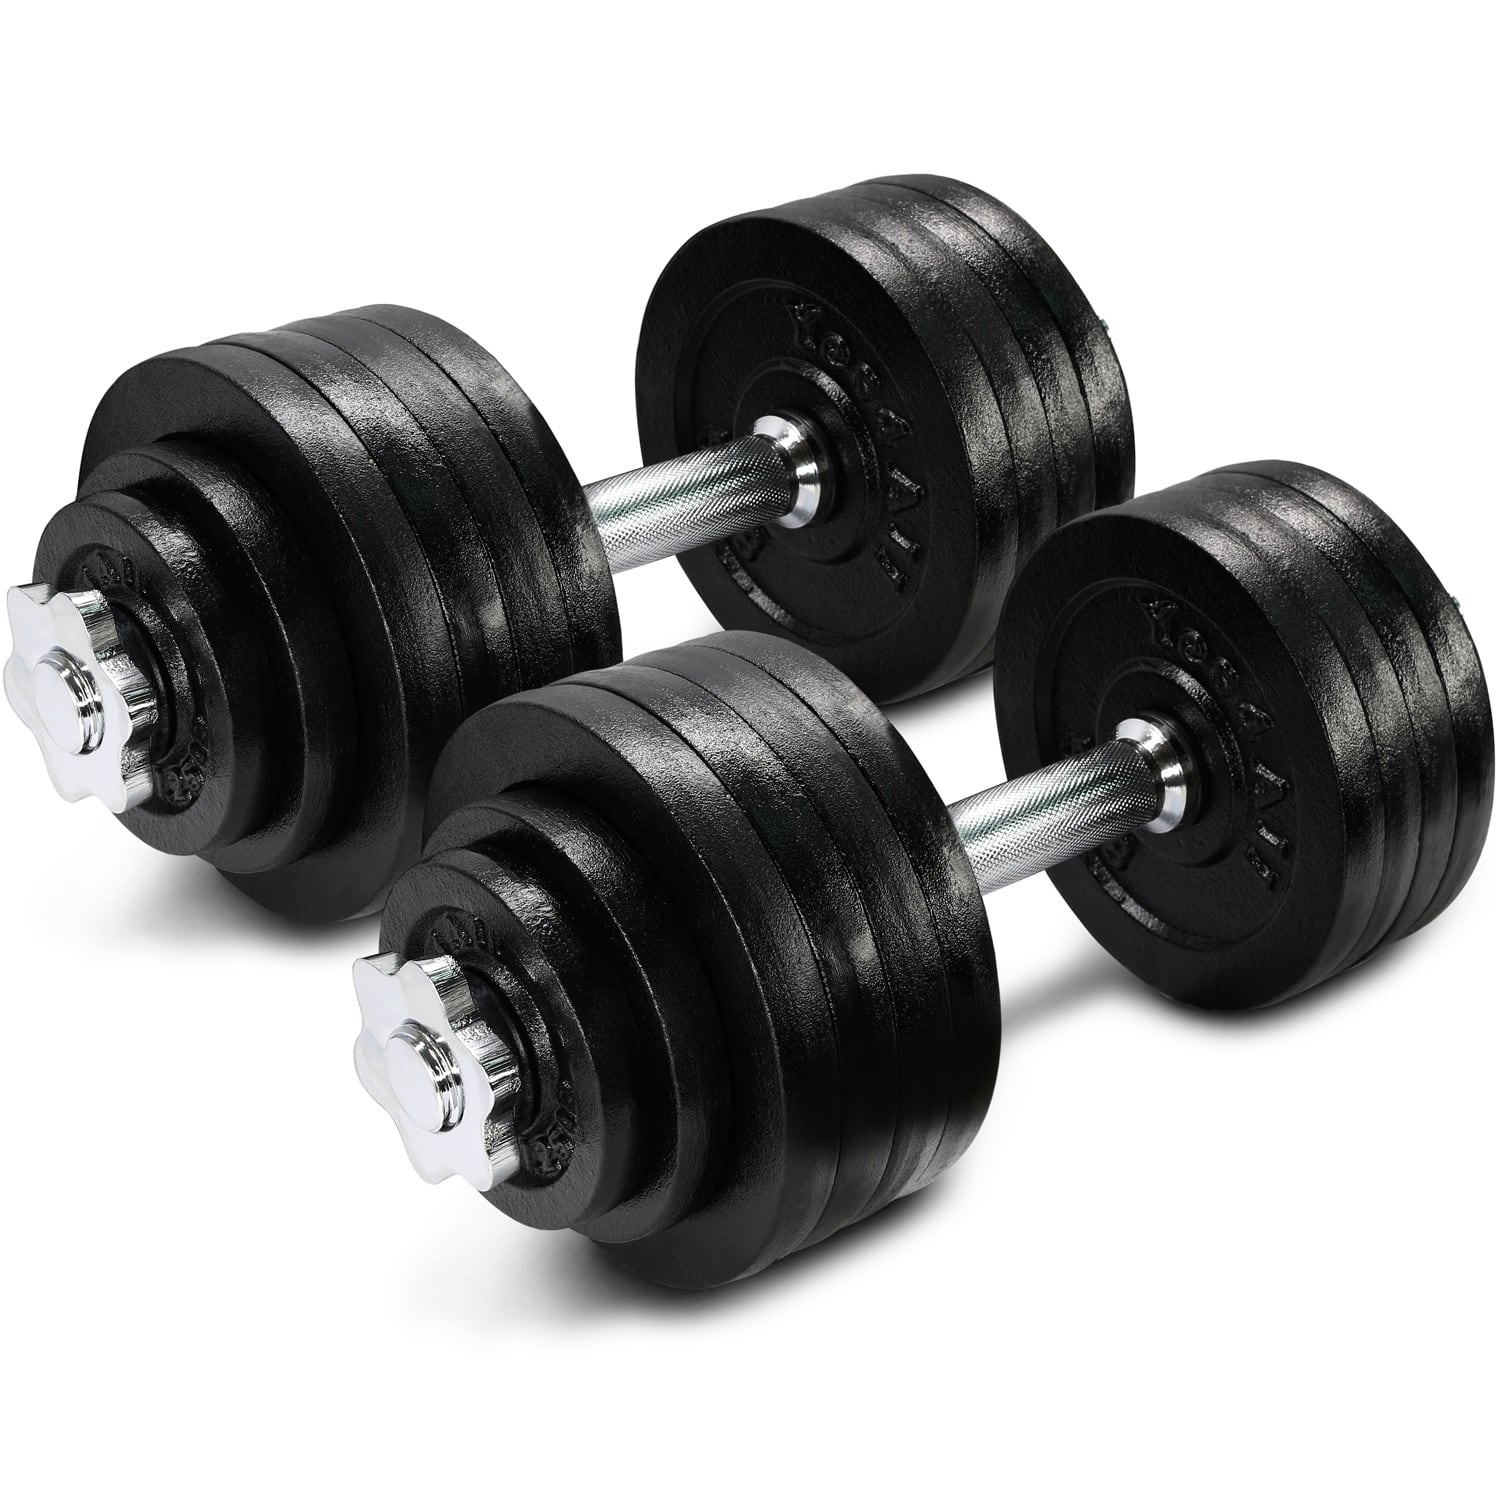 Yes4All 105 lb Adjustable Dumbbell Weight Set - Cast Iron Dumbbell (a Pair) - 109.99 + Free Shipping $109.99